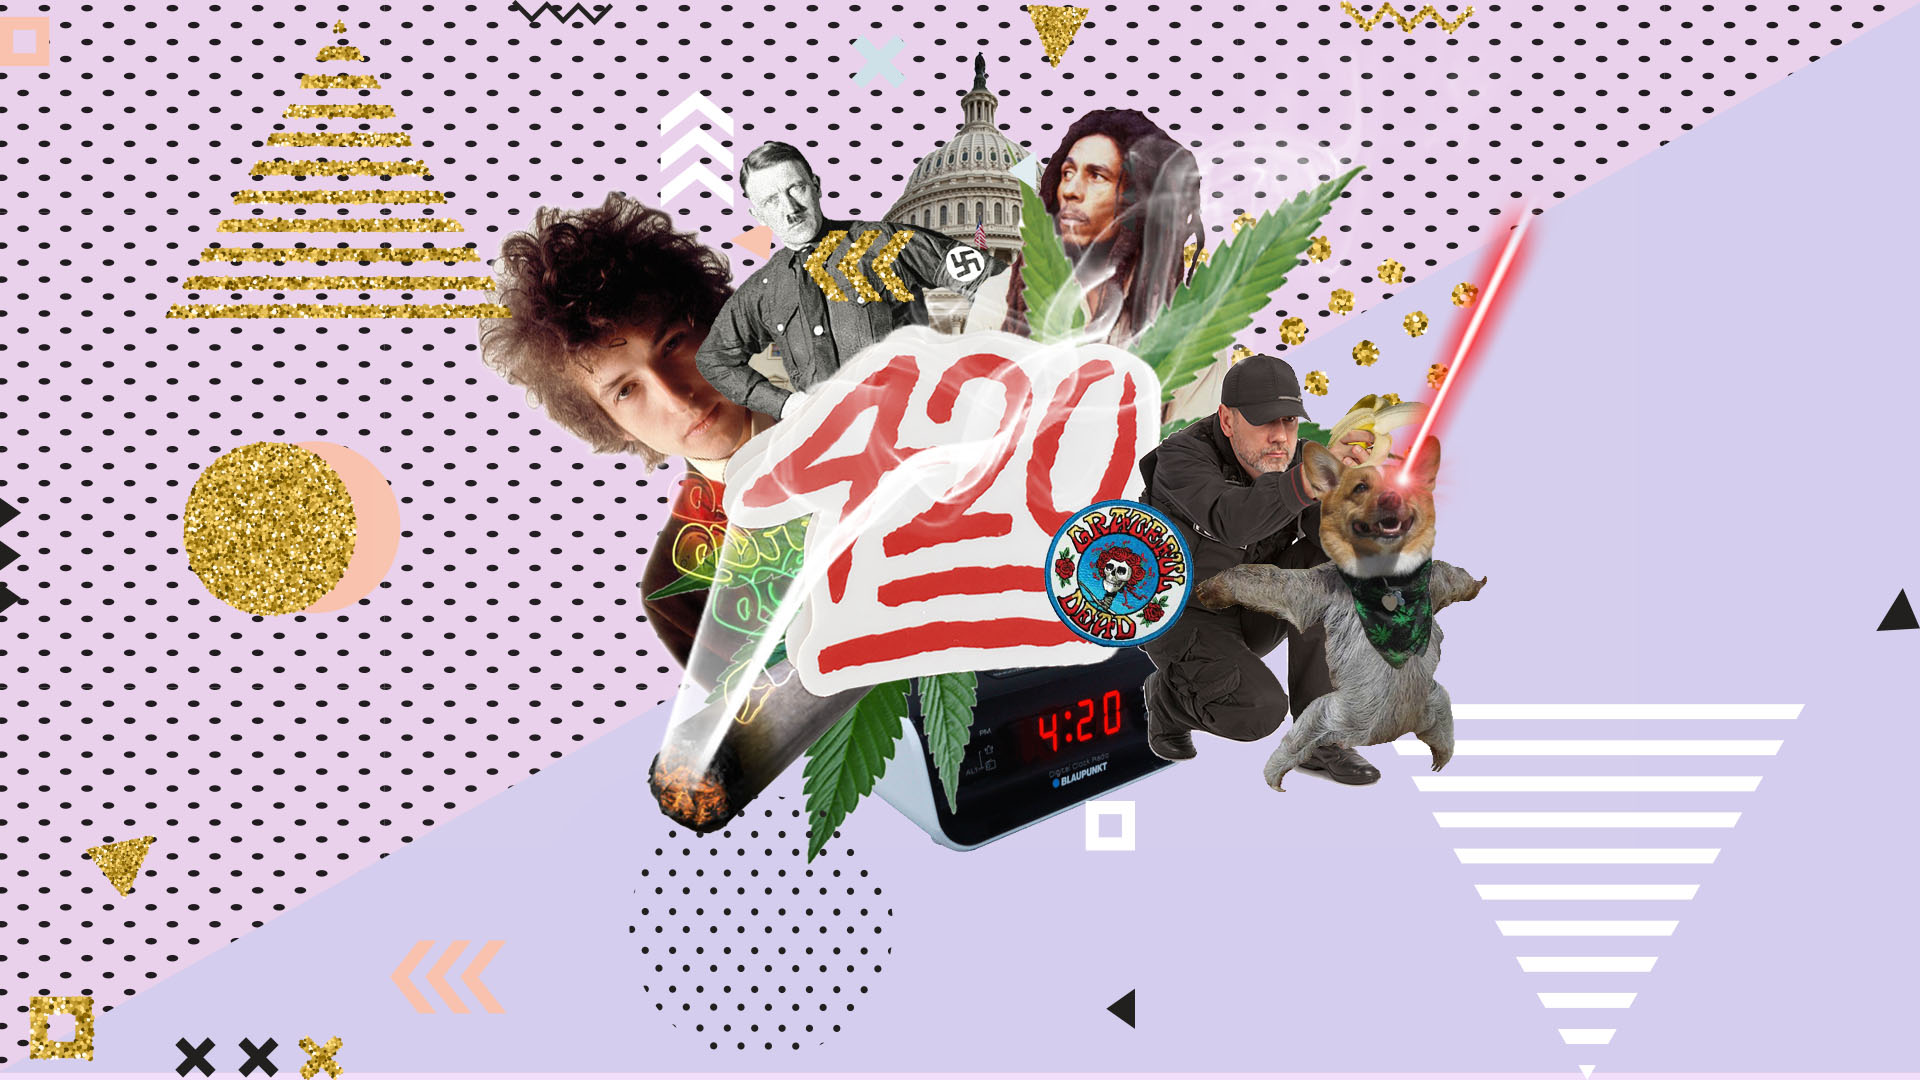 Pot Lore: Where did 420 Come From